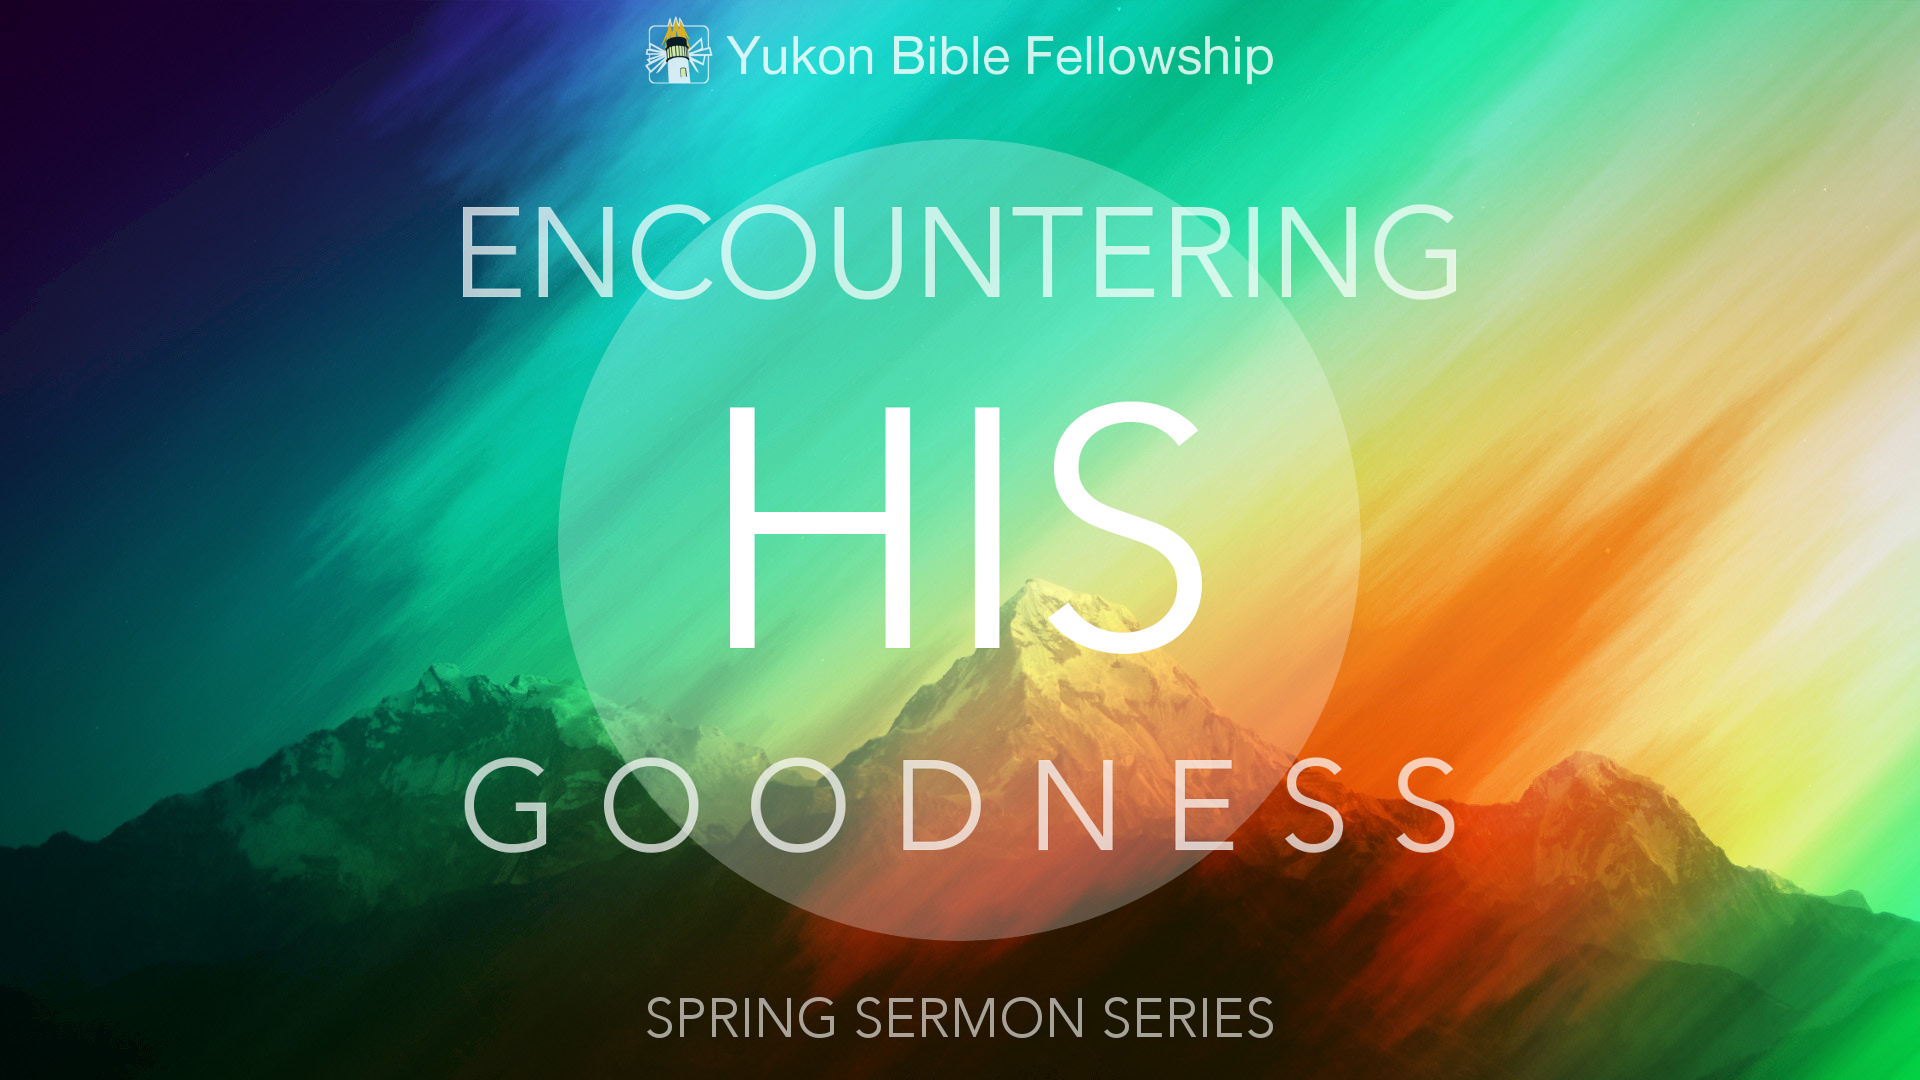 Spring sermon series – Yukon Bible Fellowship Foursquare Church